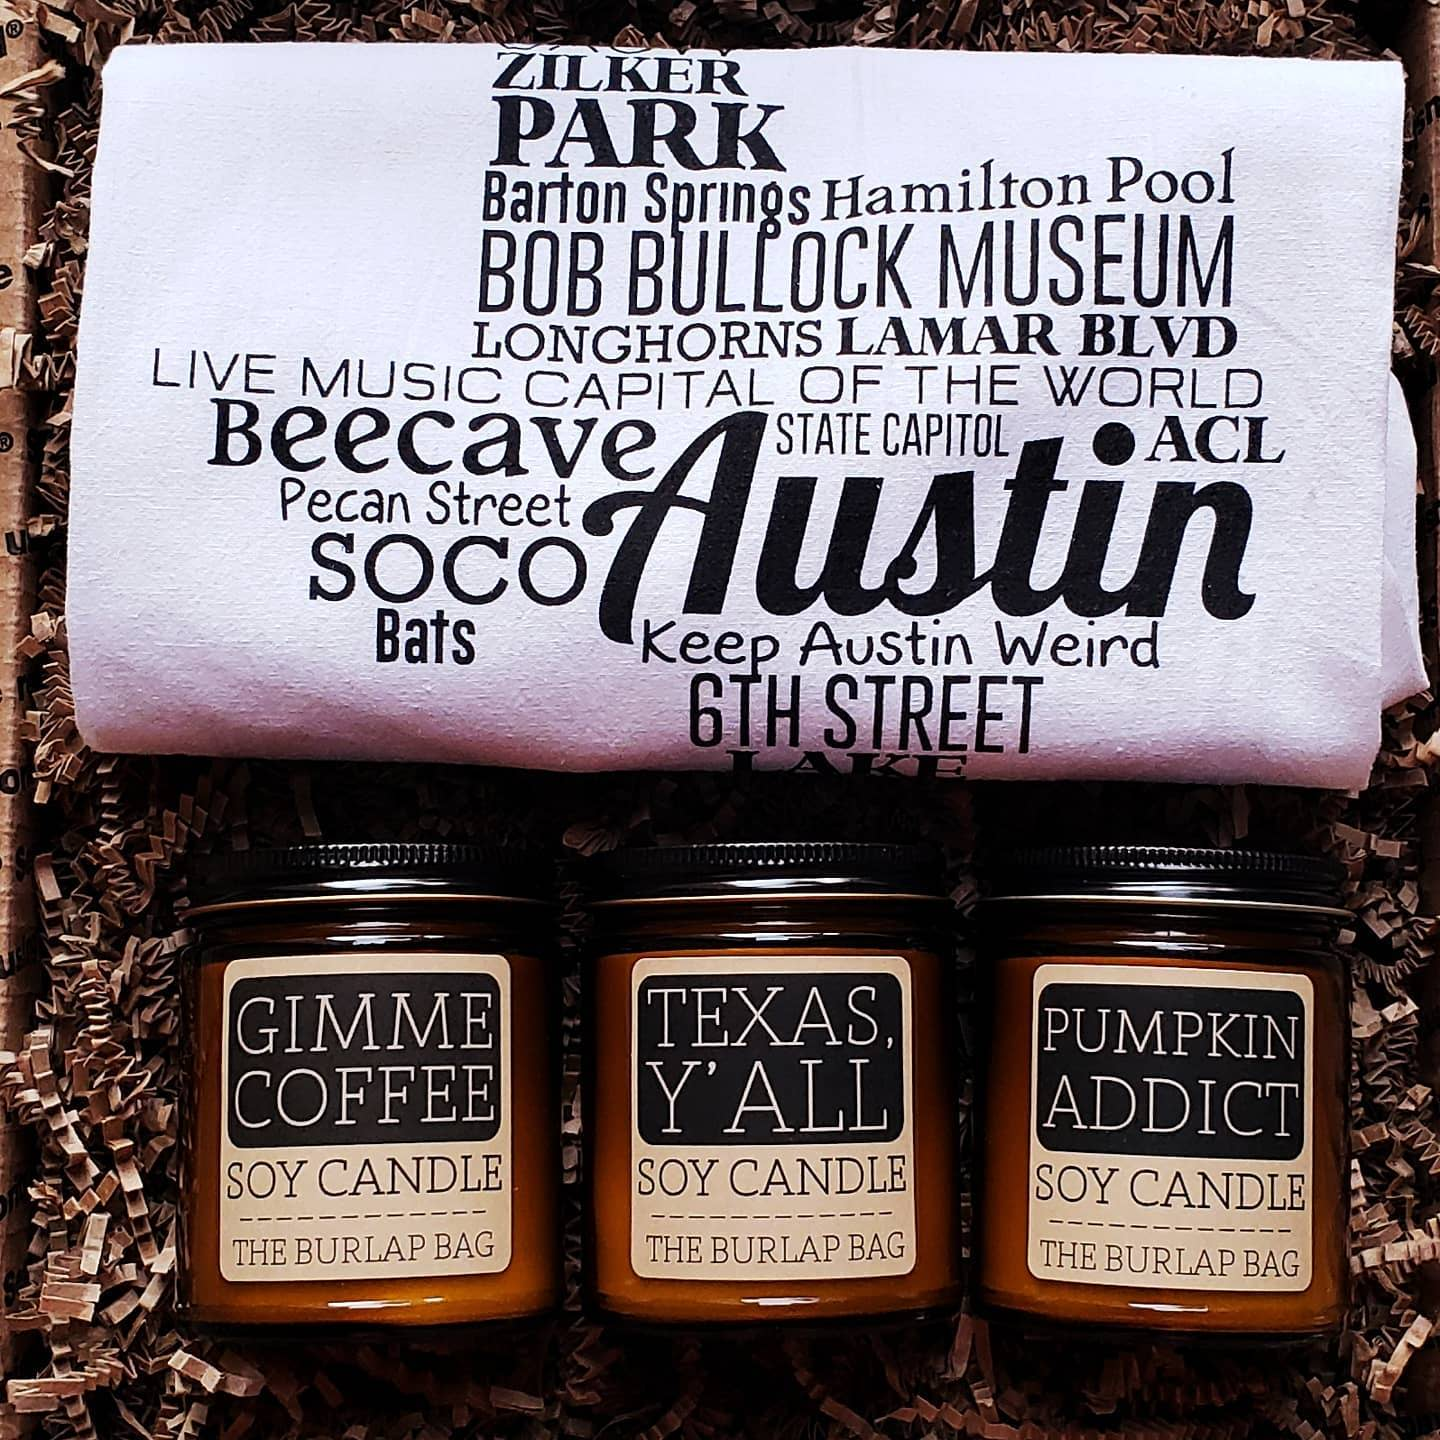 We have Texas-inspired gifts, y'all♡ Learn more about the Austin-Inspired Housewarming at https://bit.ly/3dUbVu9 ♡